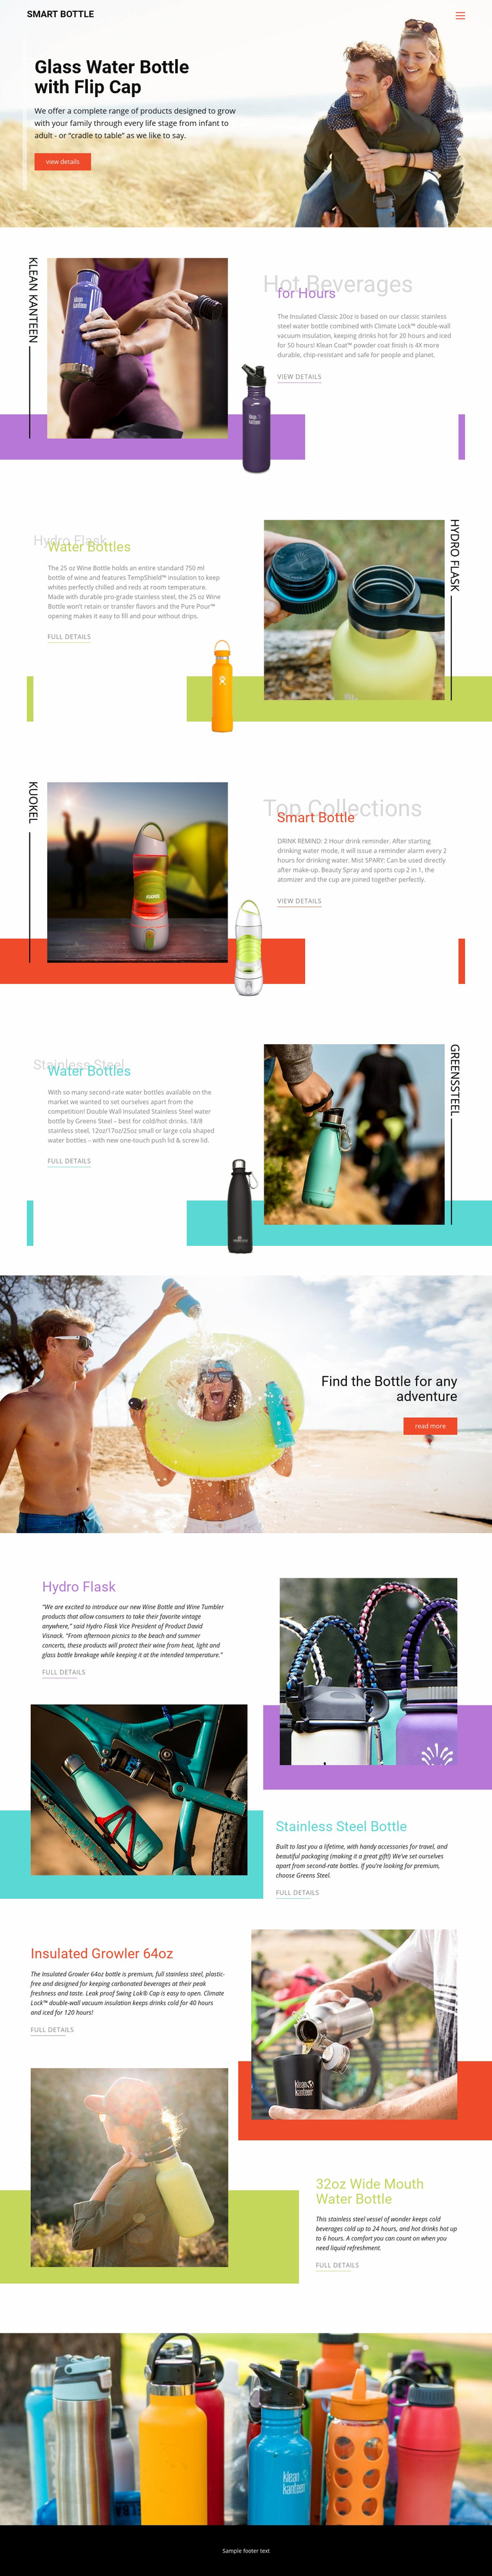 Water Bottles Web Page Designer